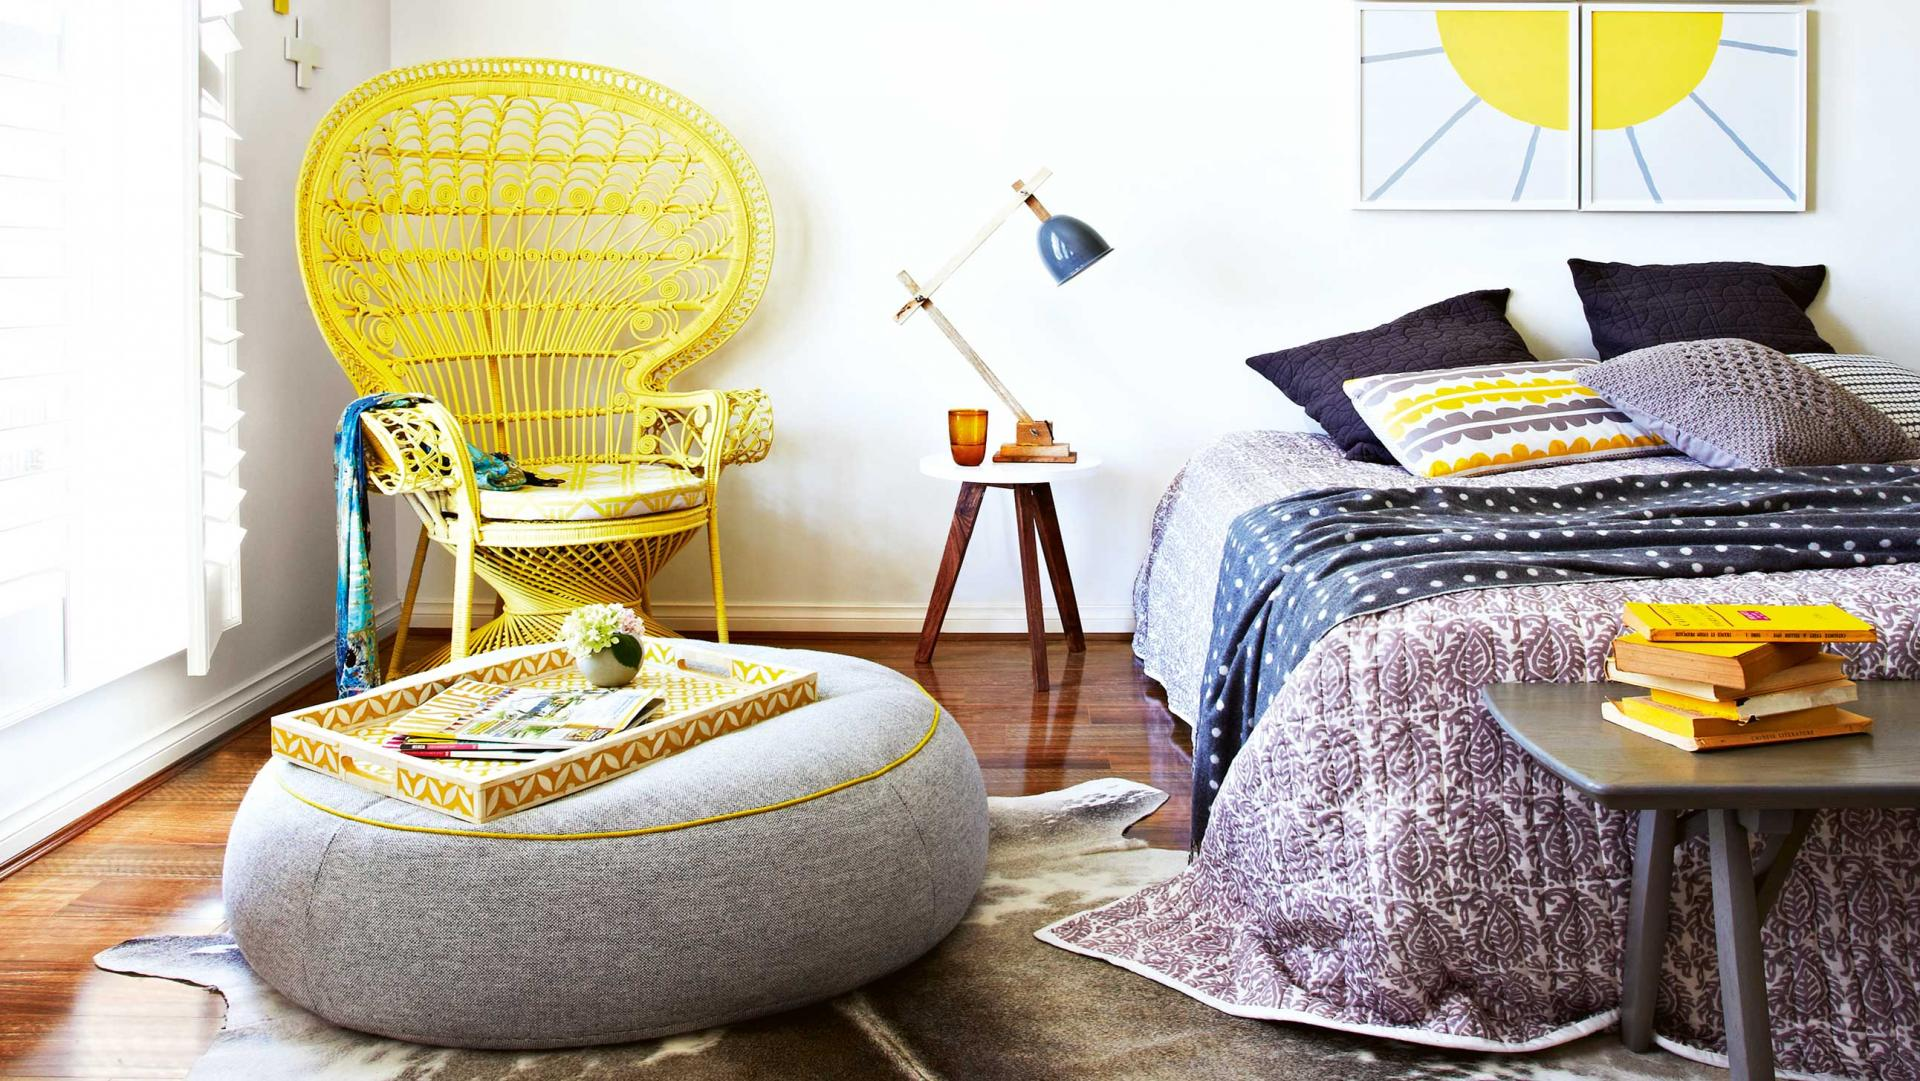 Bedroom yellow peacock chair julia green apr13 20150917111001 q75 dx1920y u1r1g0 c